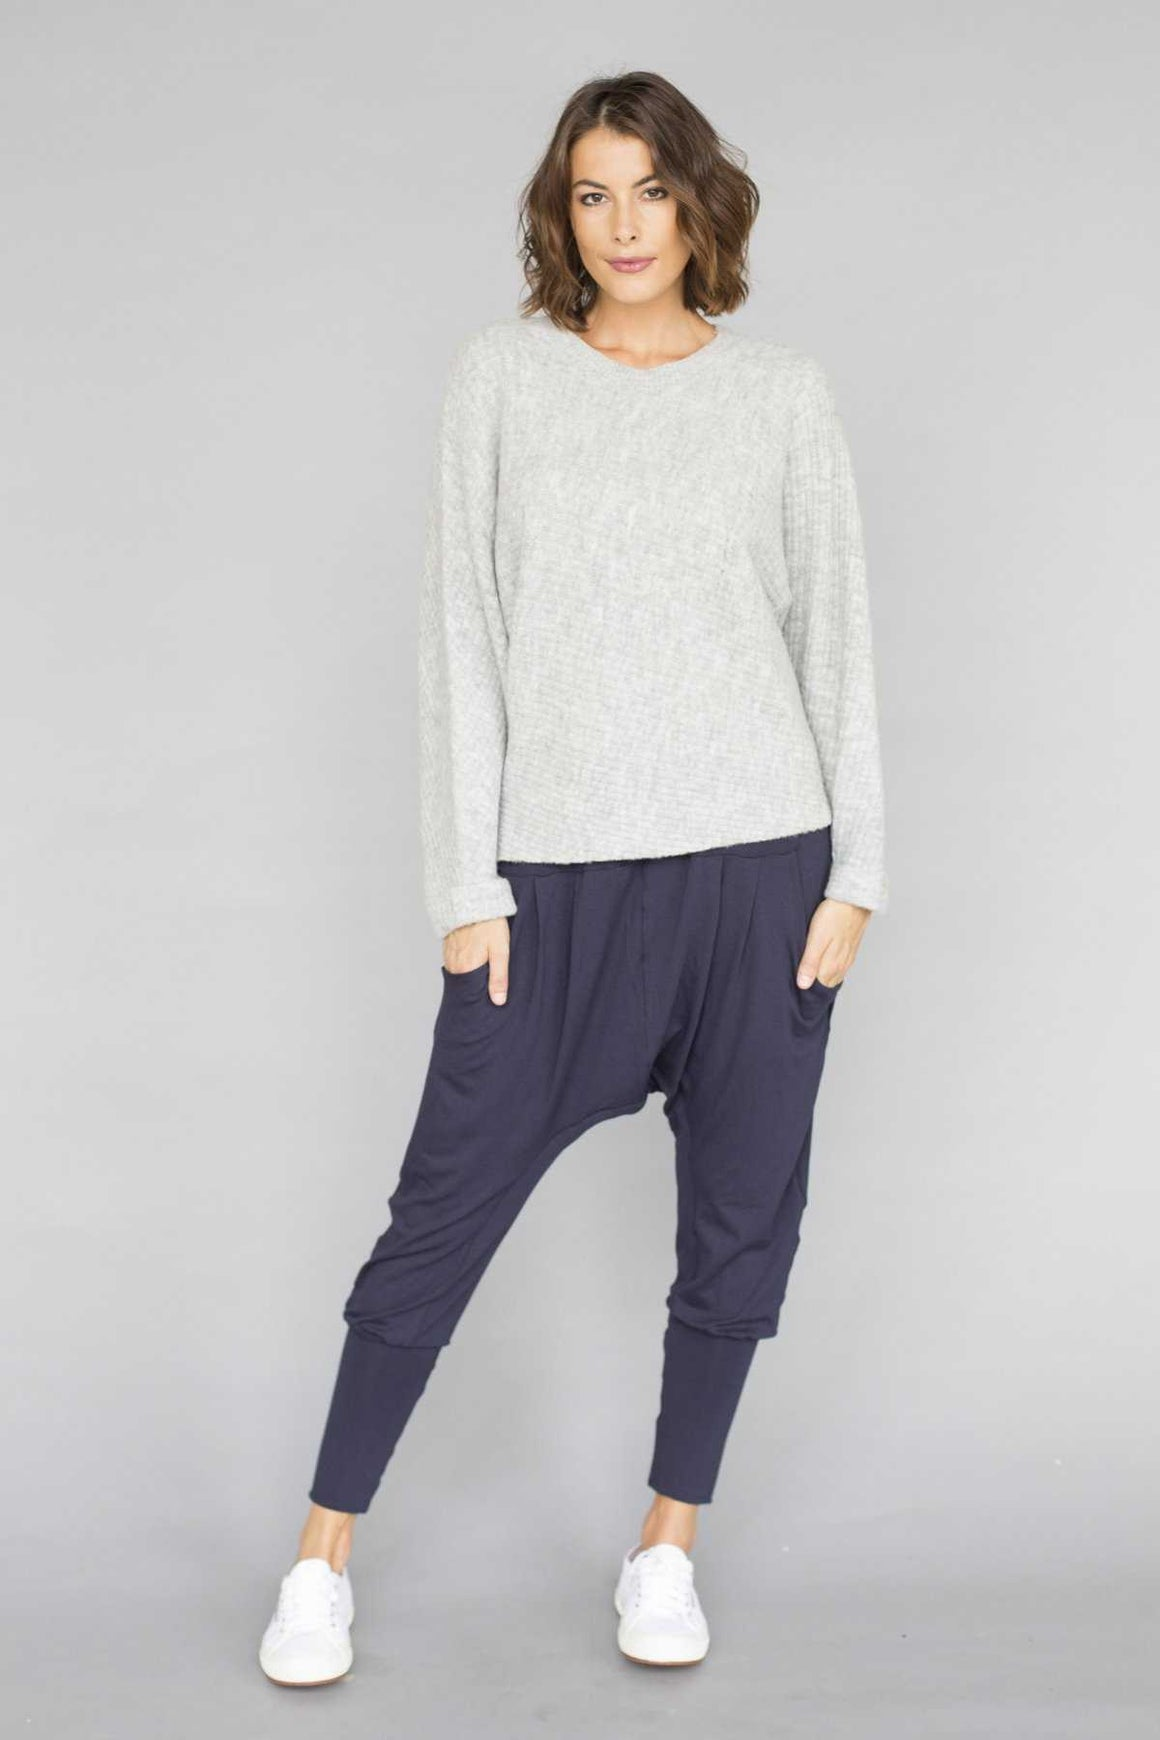 Rome jumper in light pink knit